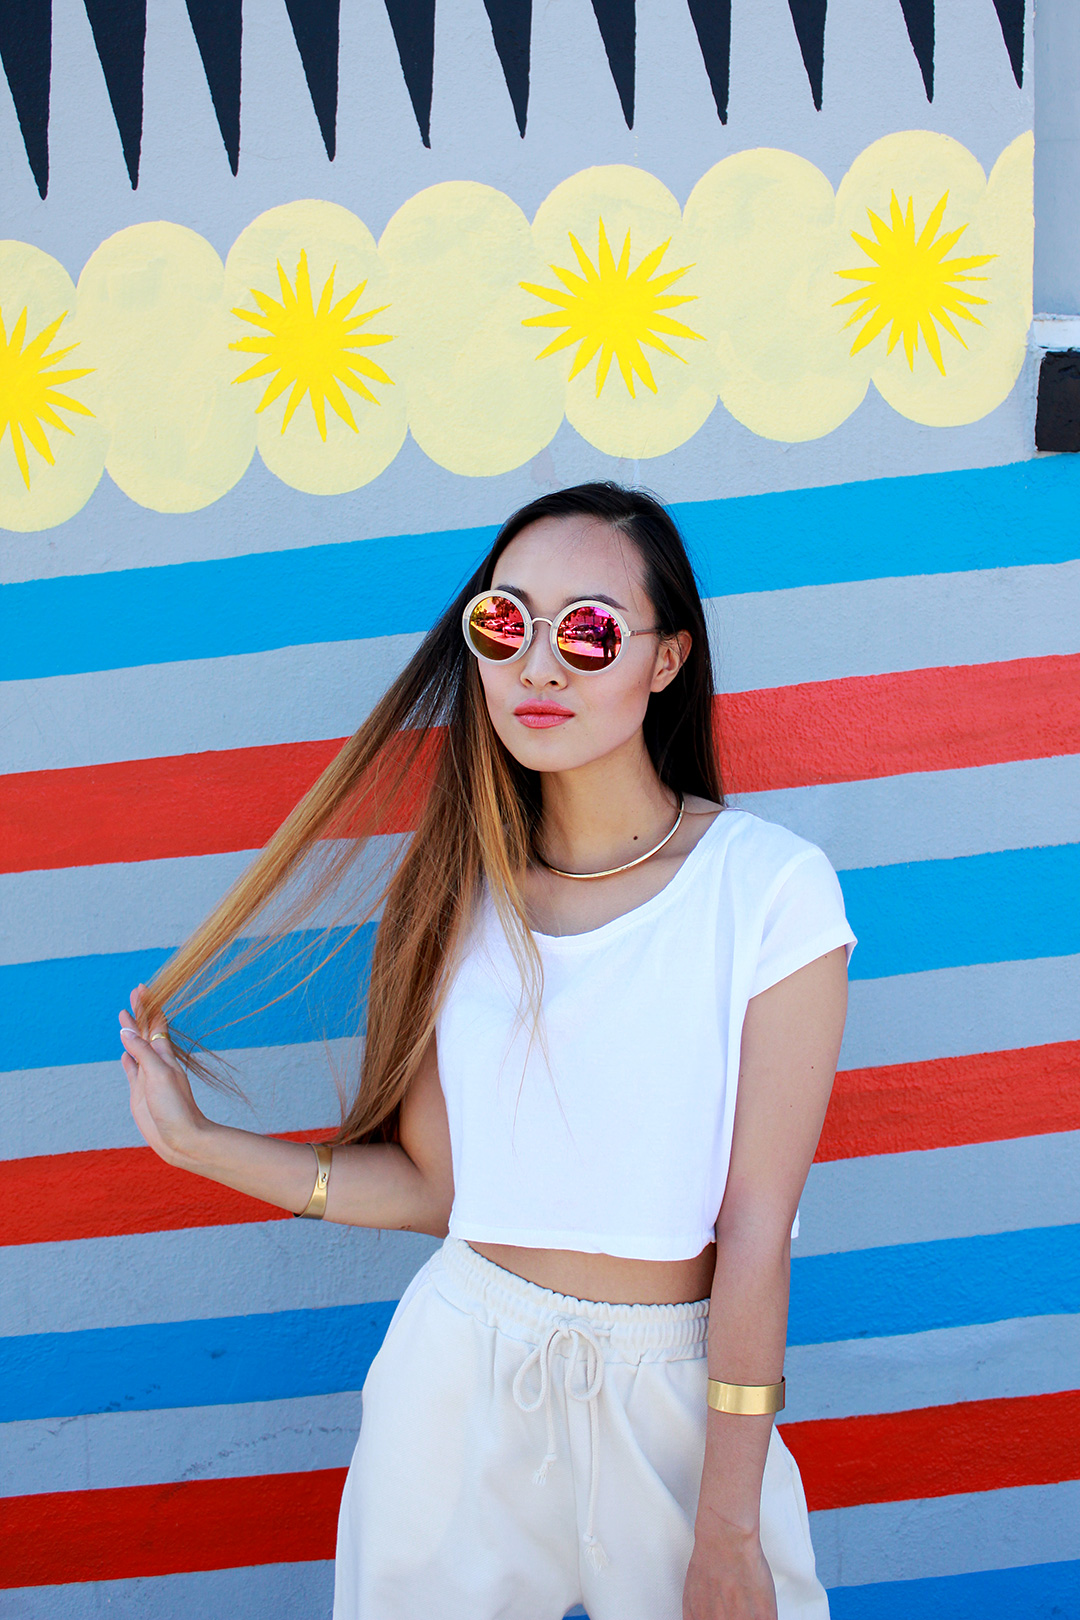 Stylenanda sunnies, Zara crop top and necklace, Madewell bracelets